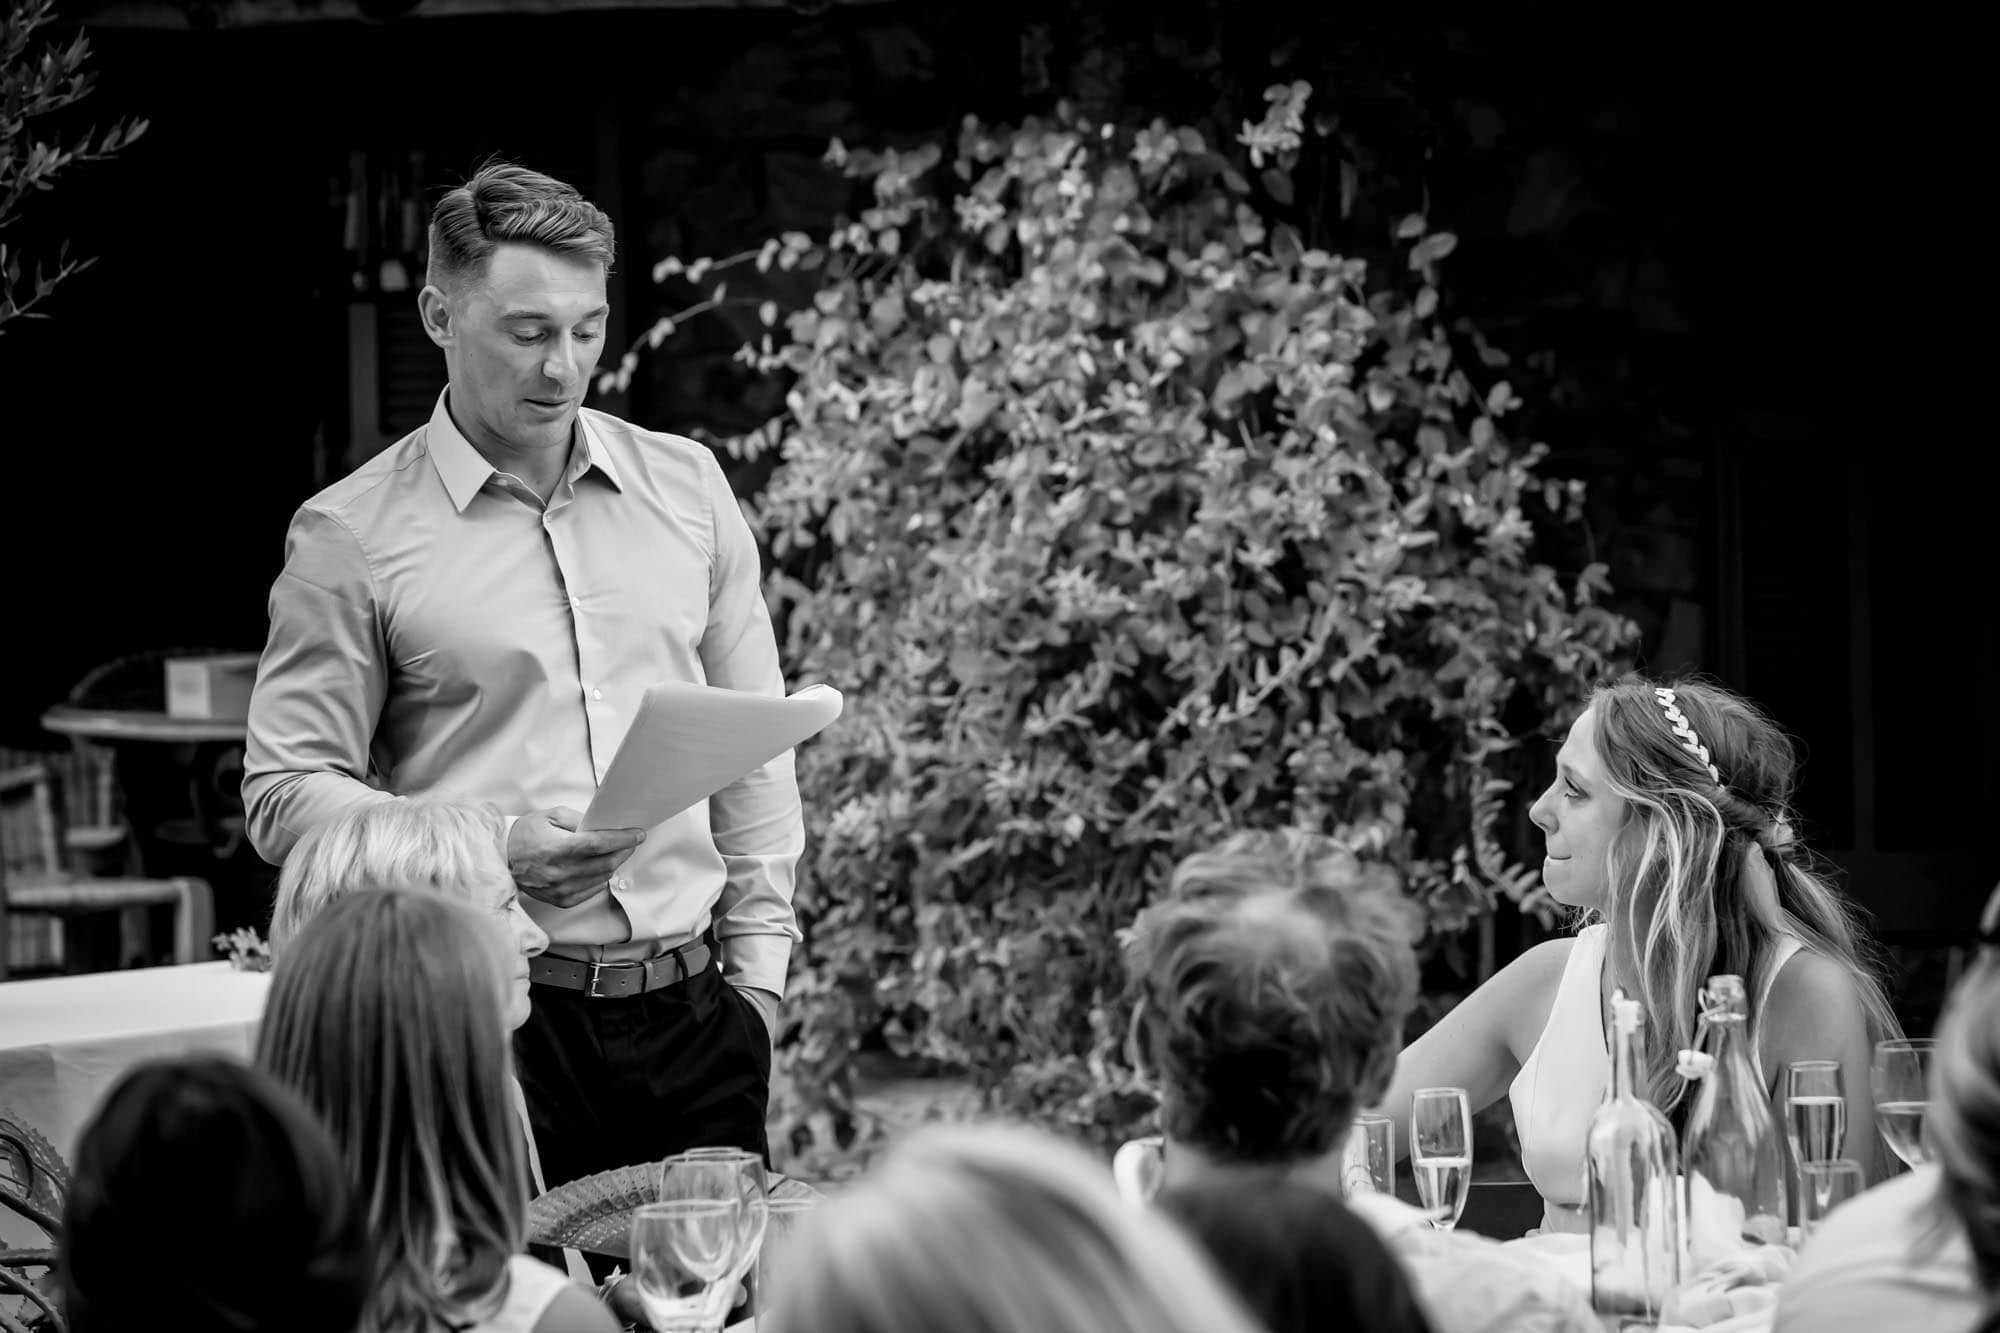 Cathy feels emotional at the end of Ben's moving wedding speech at their Mallorca finca wedding